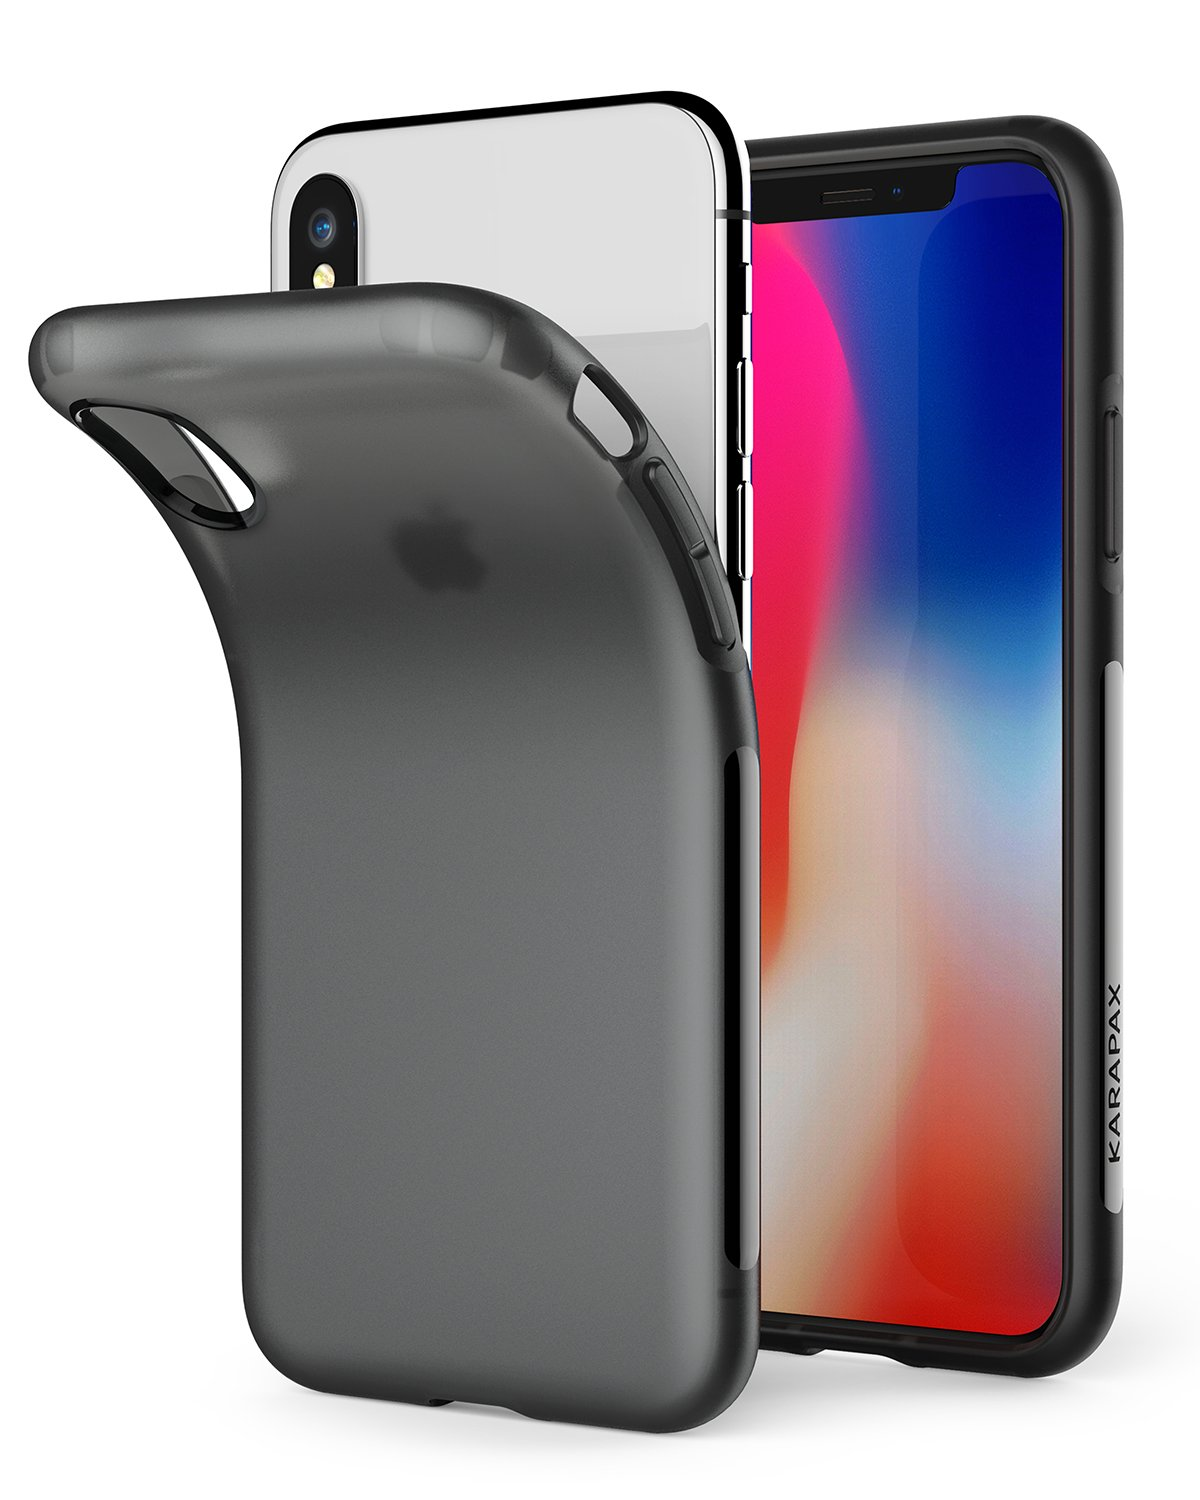 Anker IPhone X Case at Amazon